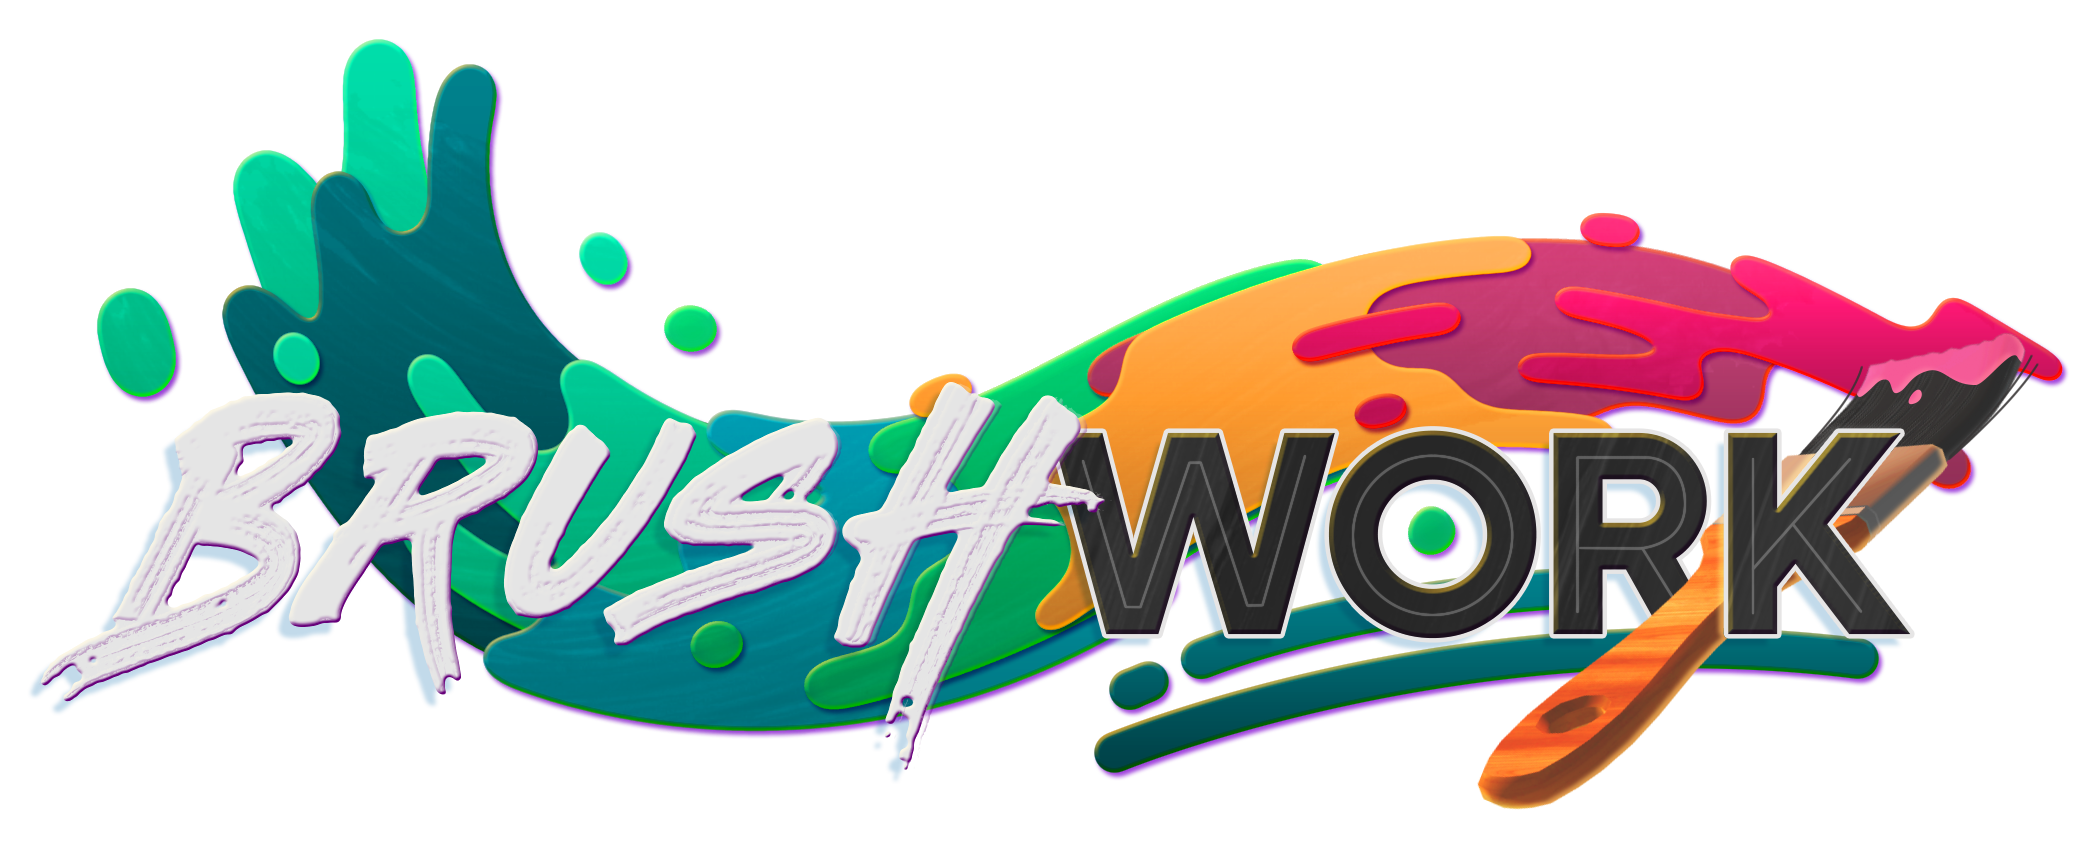 Brushwork logo, paintbrush with a rainbow gradient of paint